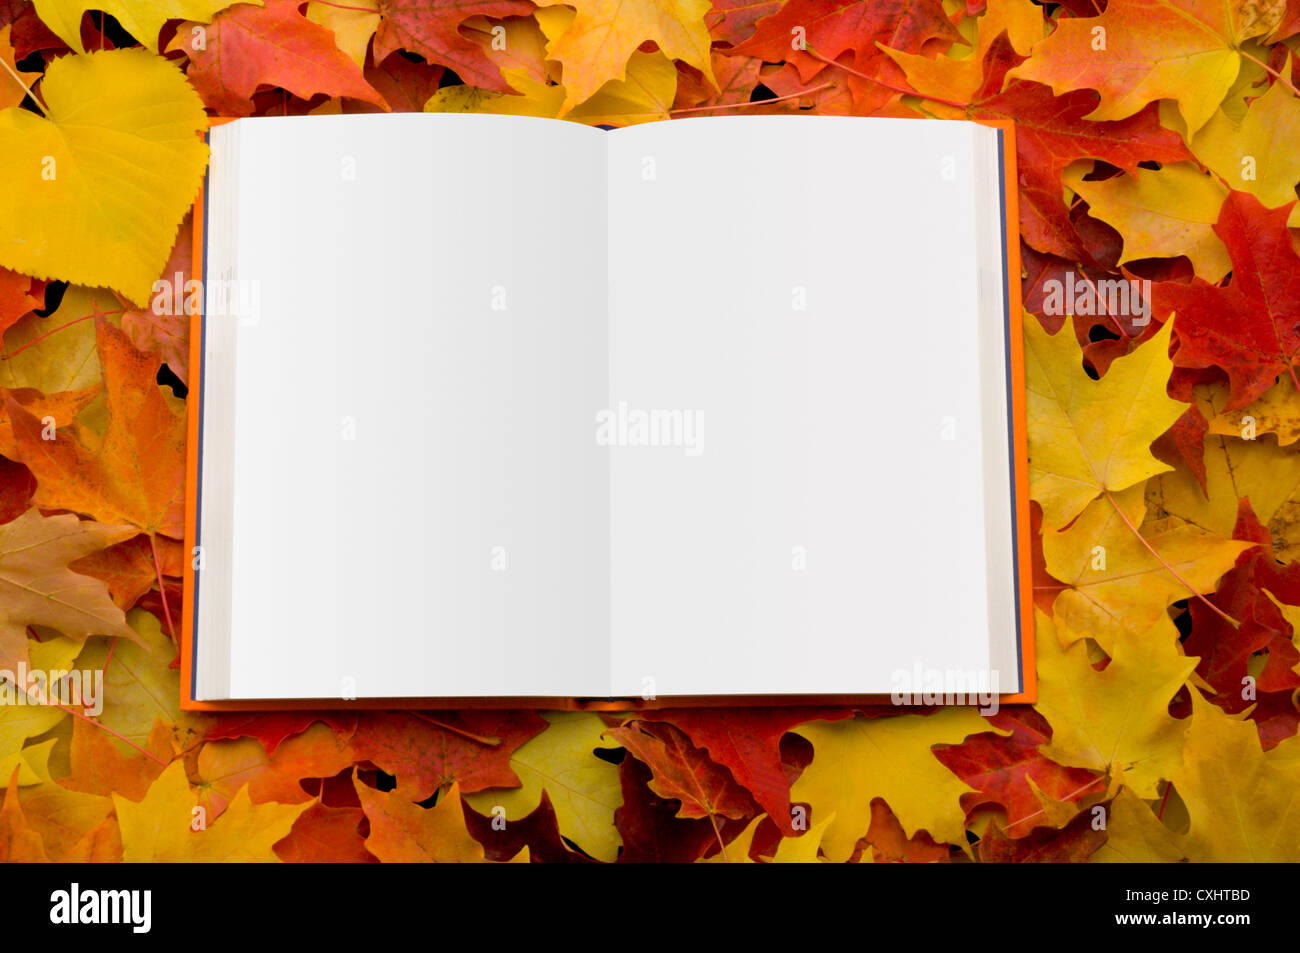 Open book on autumn leaves - Stock Image